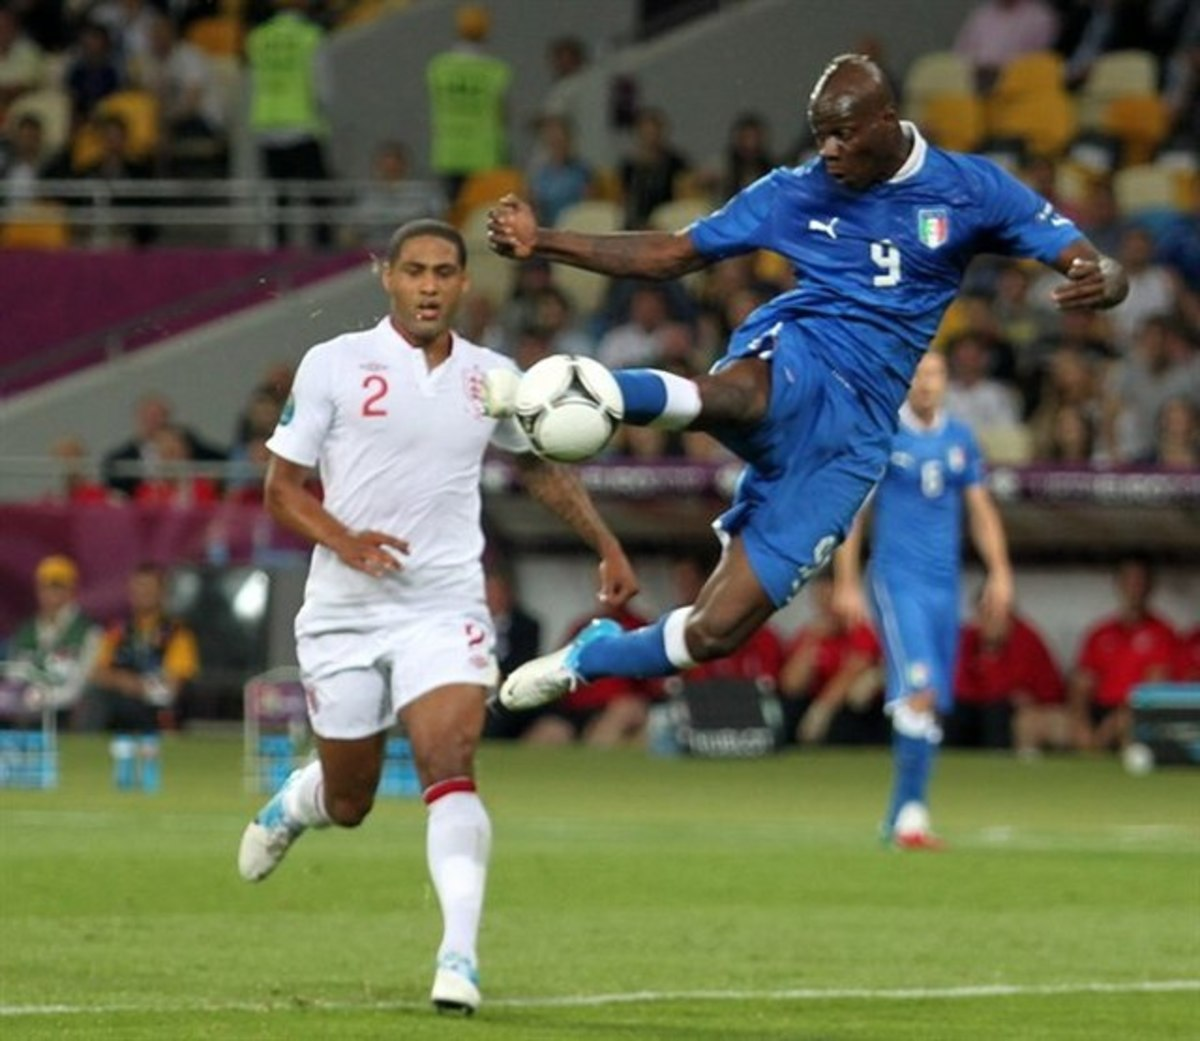 Image of Italy Vs England in Euro 2012.